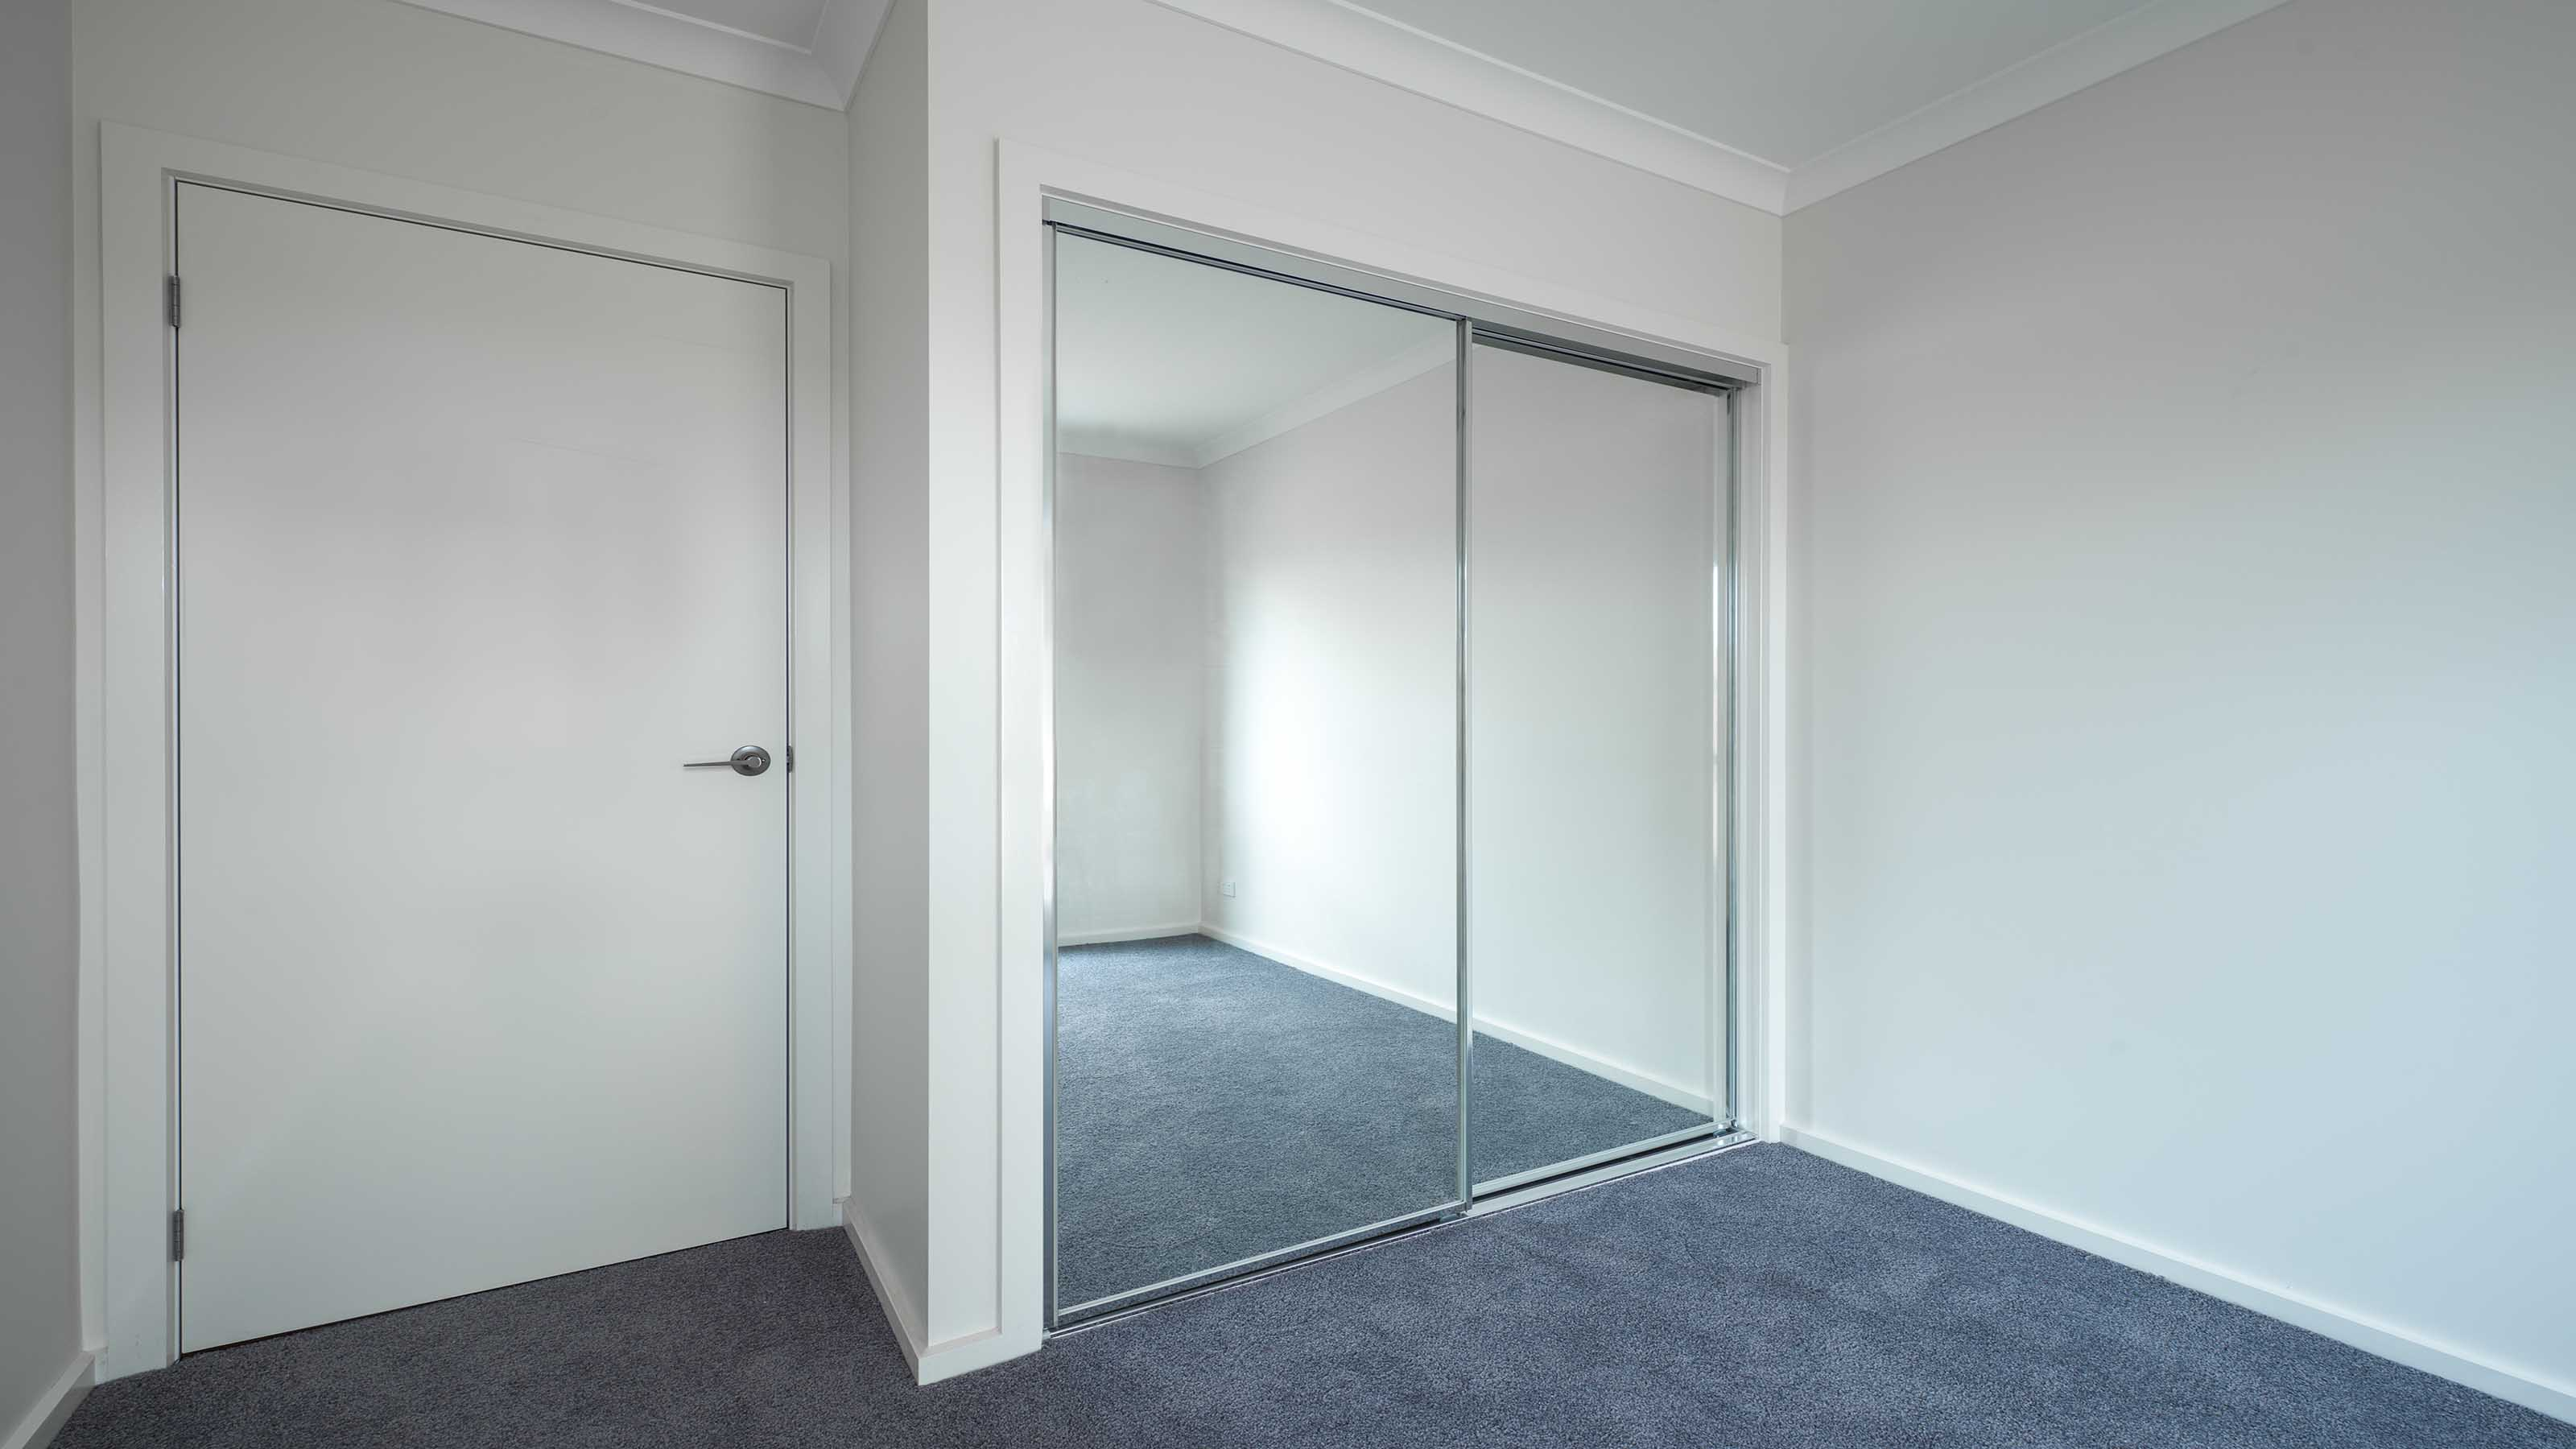 wardrobe sliding mirror door geelong splashbacks motionglo